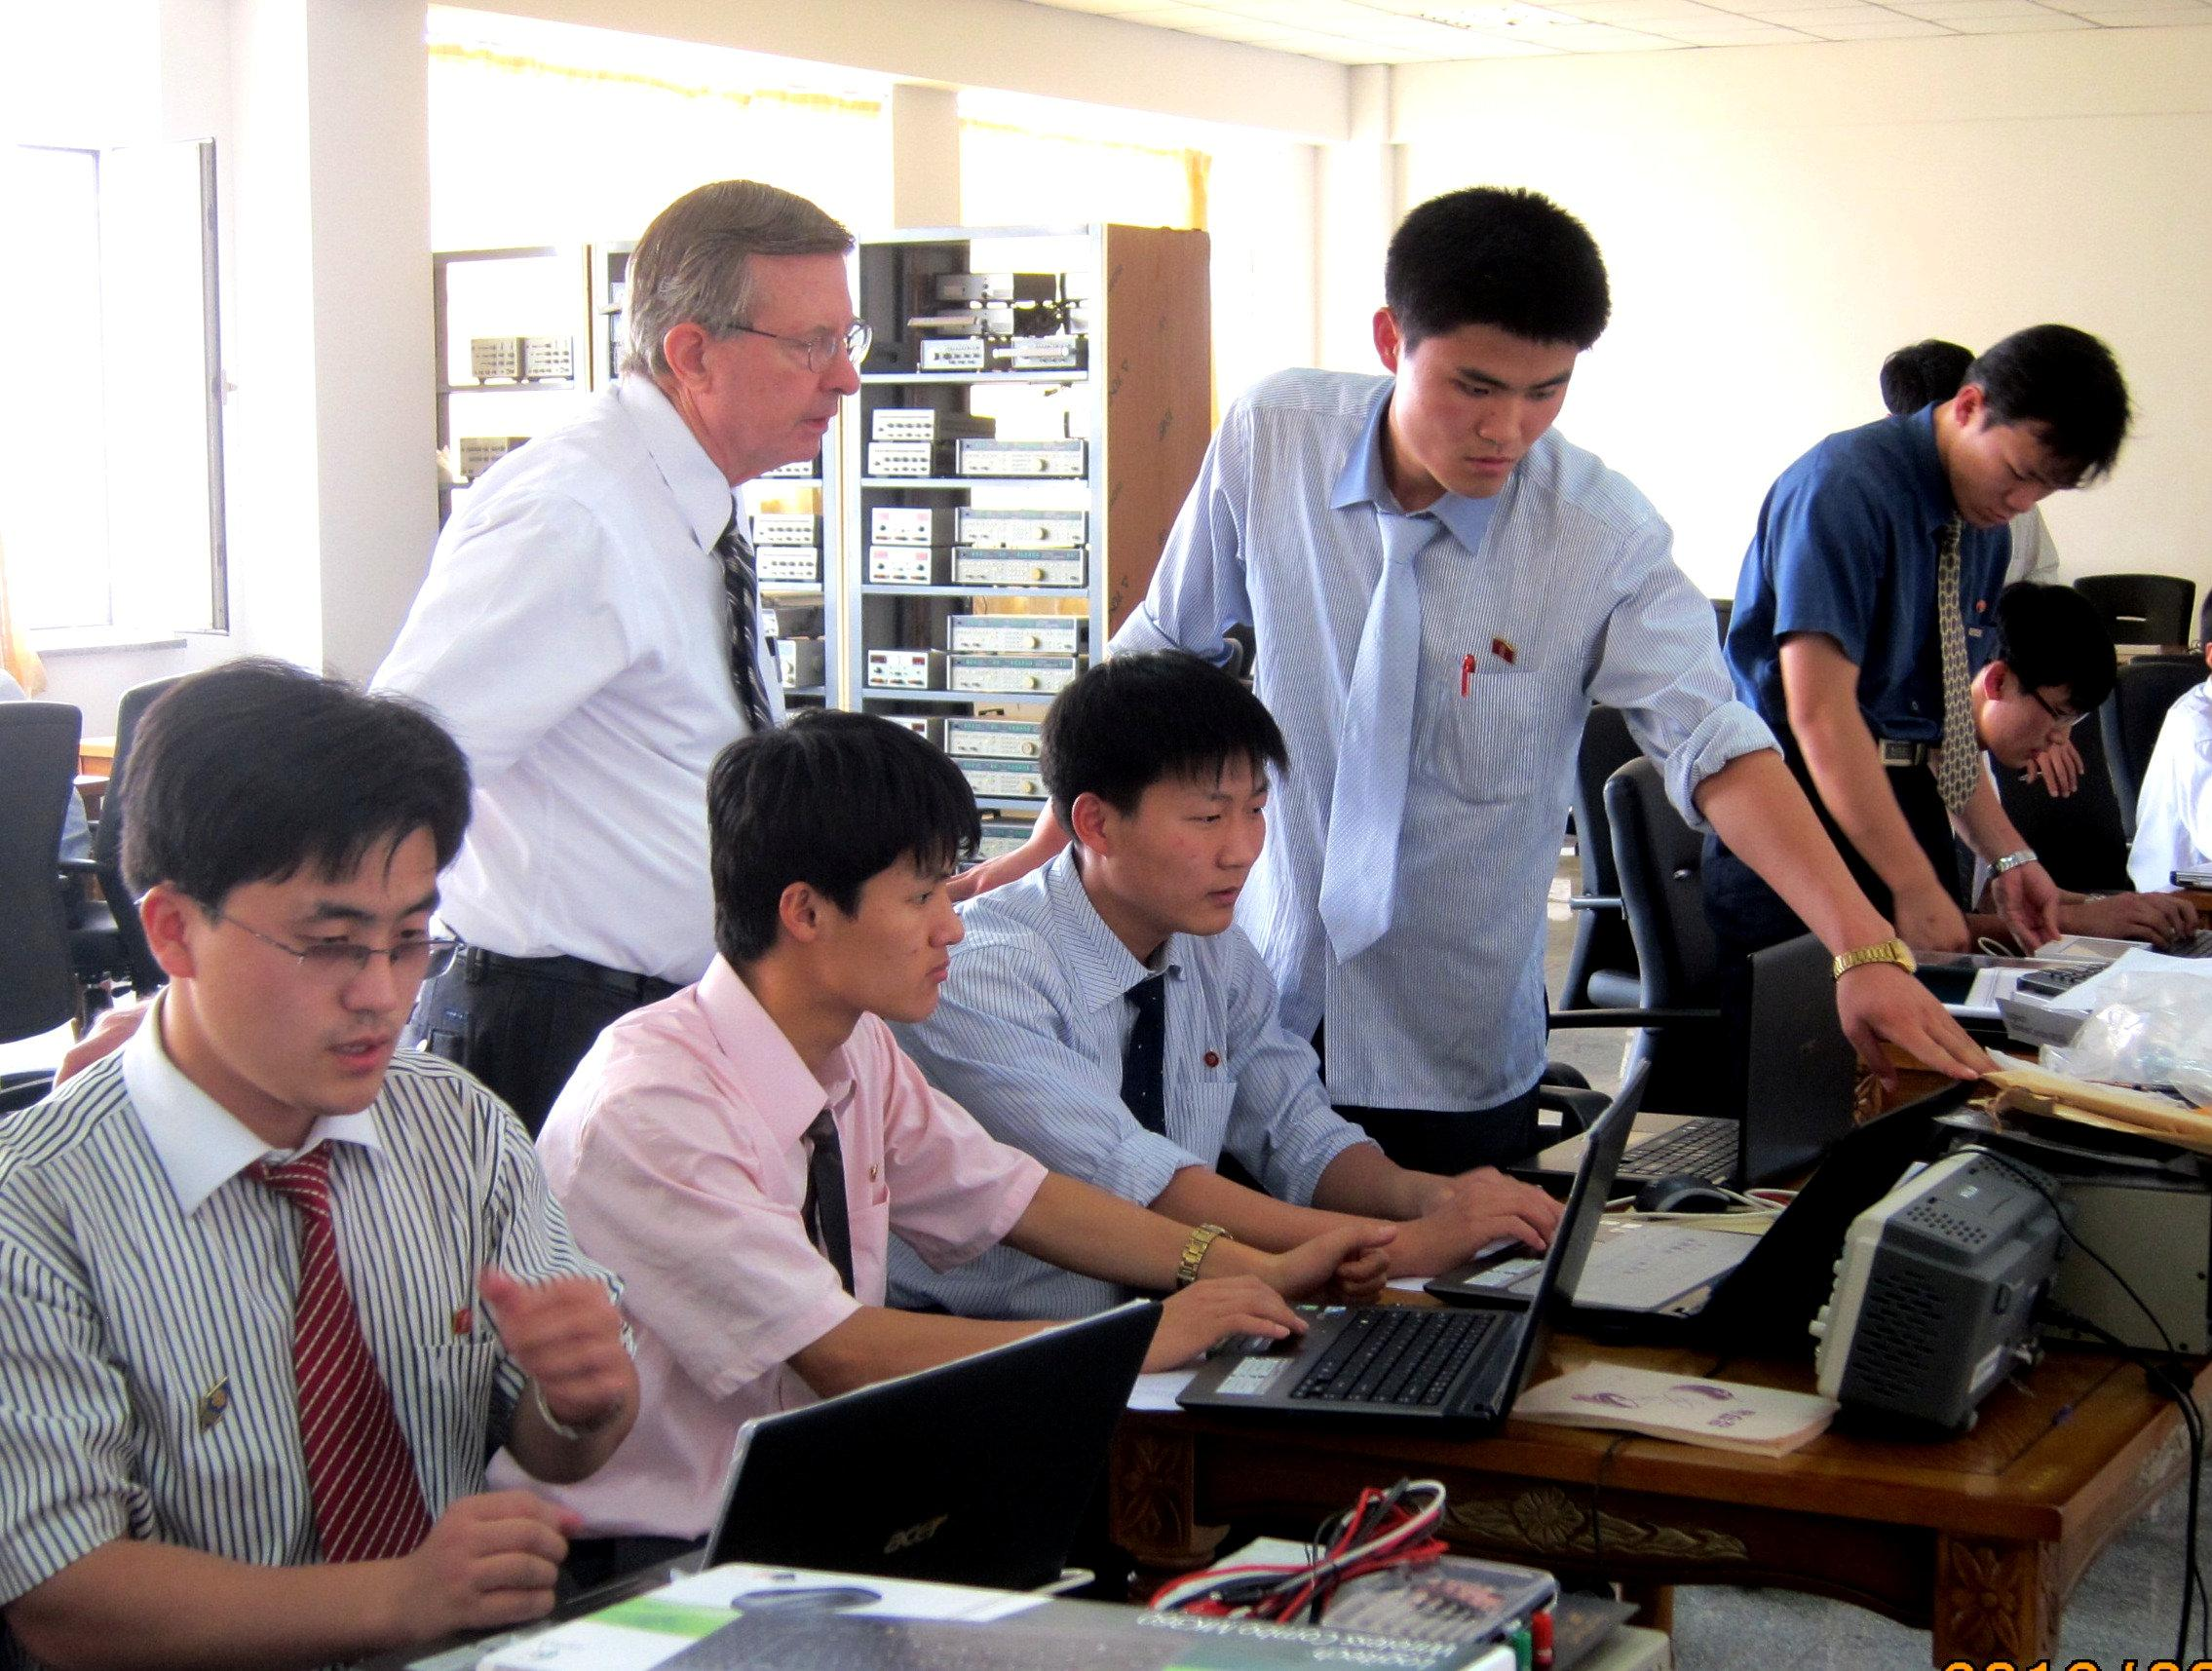 Students of Pyongyang University of Science and Technology (PUST) attend a class at PUST in Pyongyang, North Korea, in this undated picture provided by Yu-Taik Chon, president of Pyongyang University of Science and Technology (PUST) on June 18, 2018.    Yu-Taik Chon/Handout via